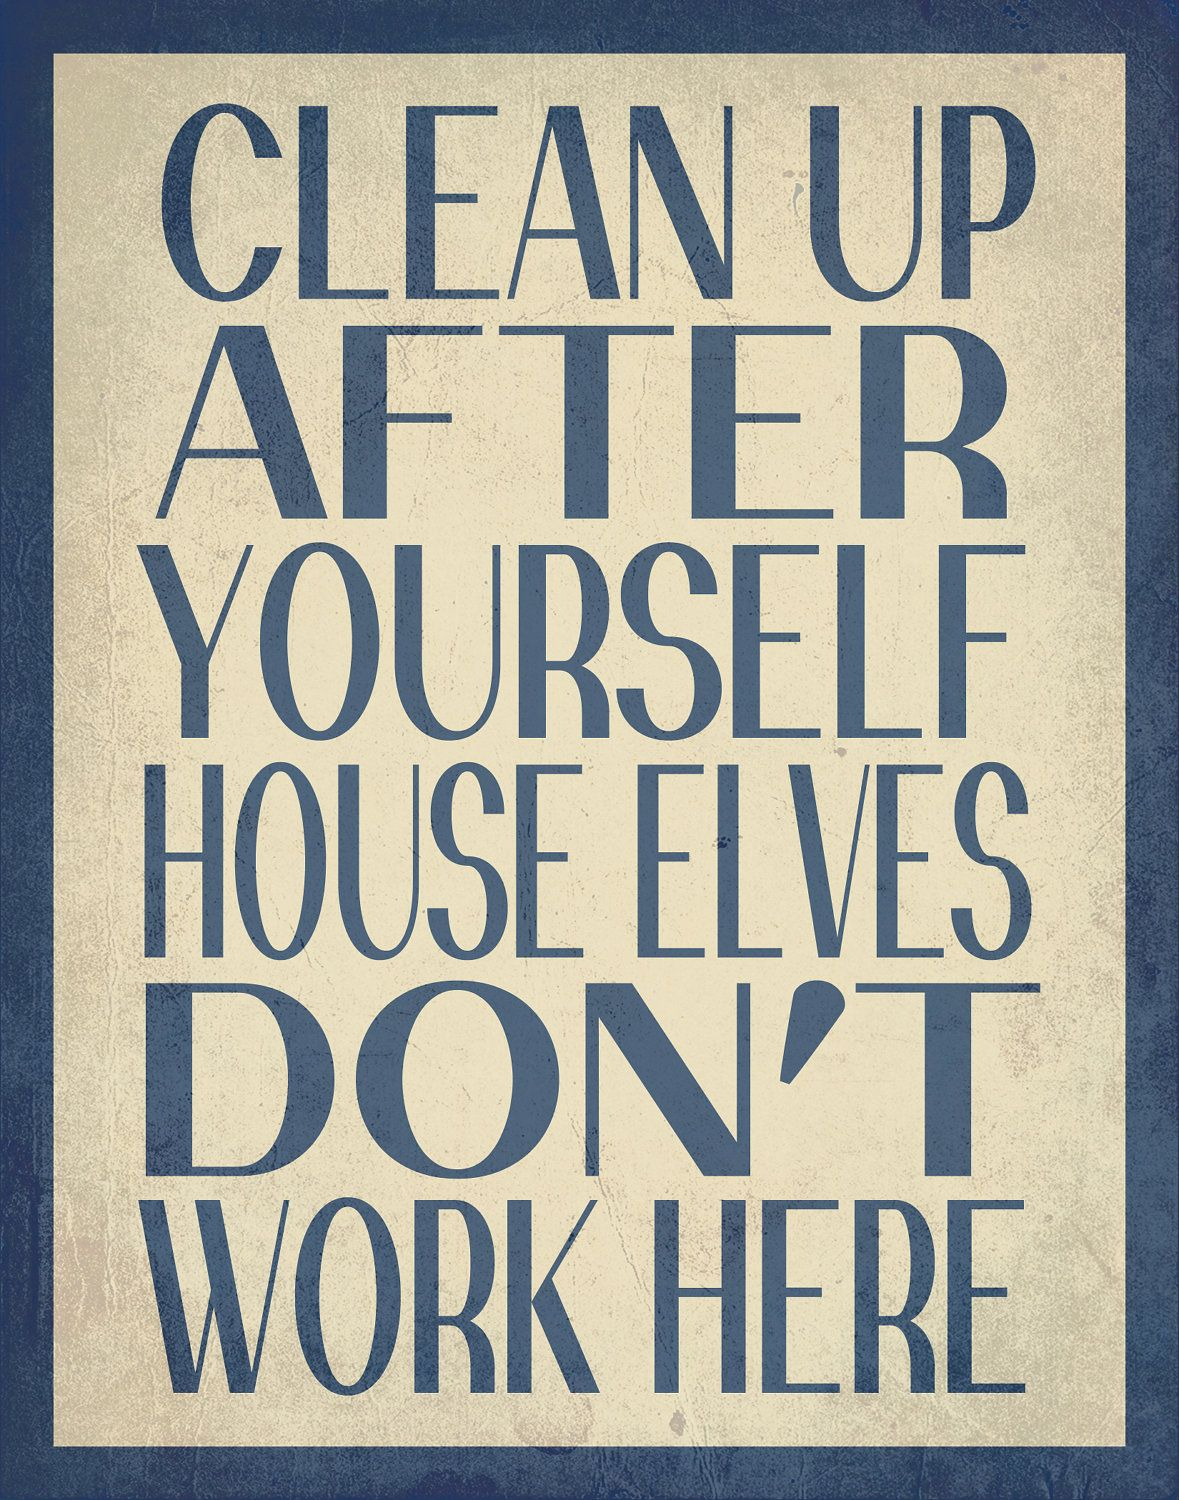 Harry Potter Inspired House Elves Don T Work Here 11 X 14 Poster 15 00 Via Etsy